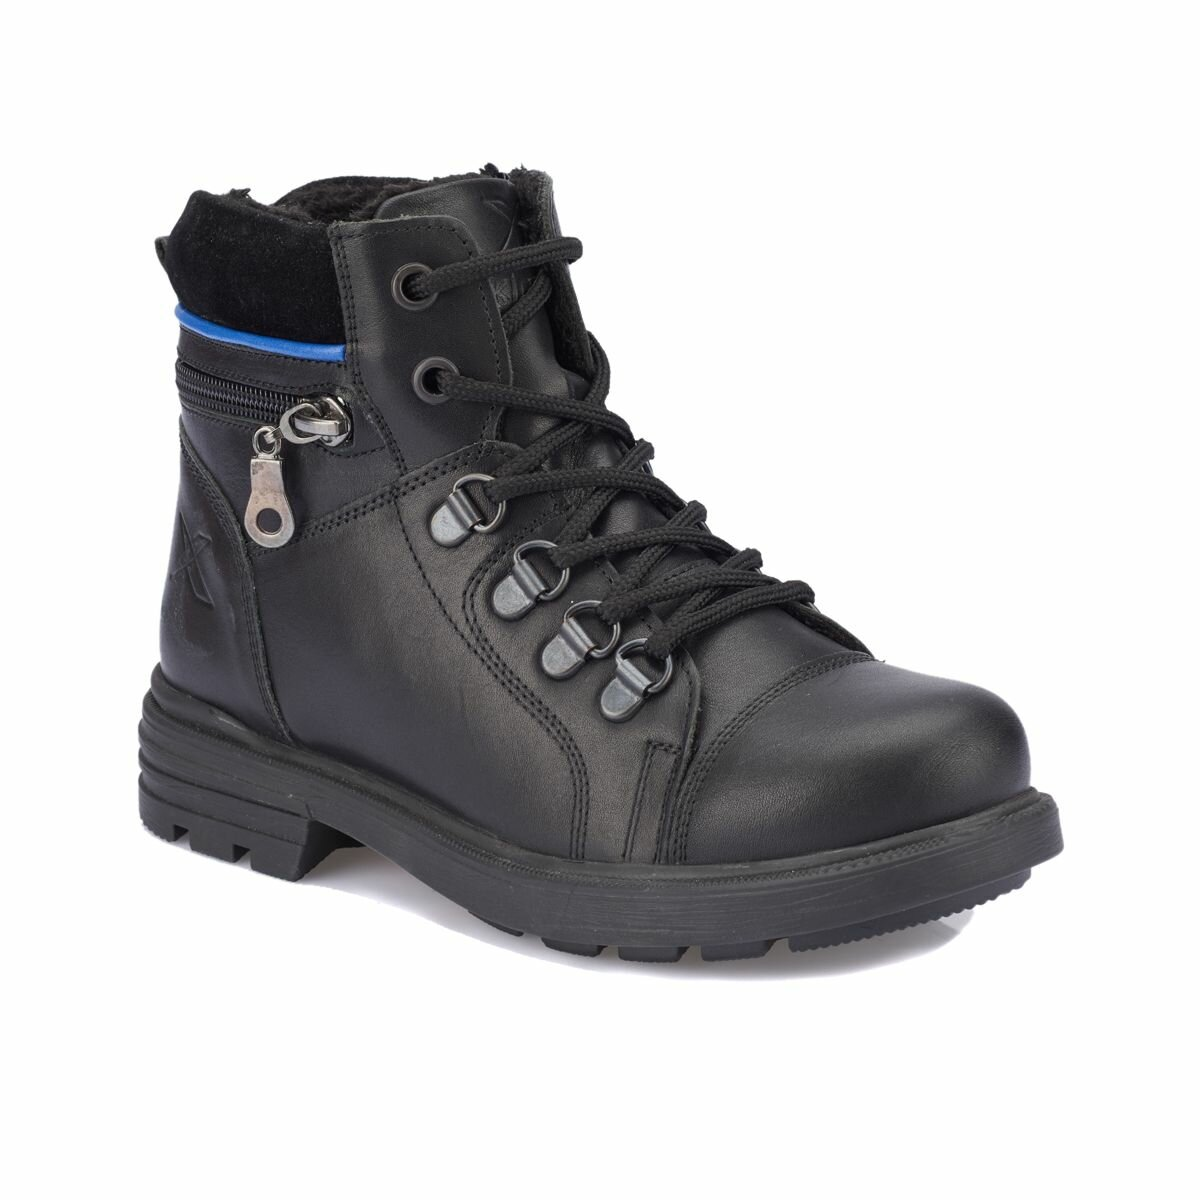 FLO KARDANO Black Male Child Boots KINETIX